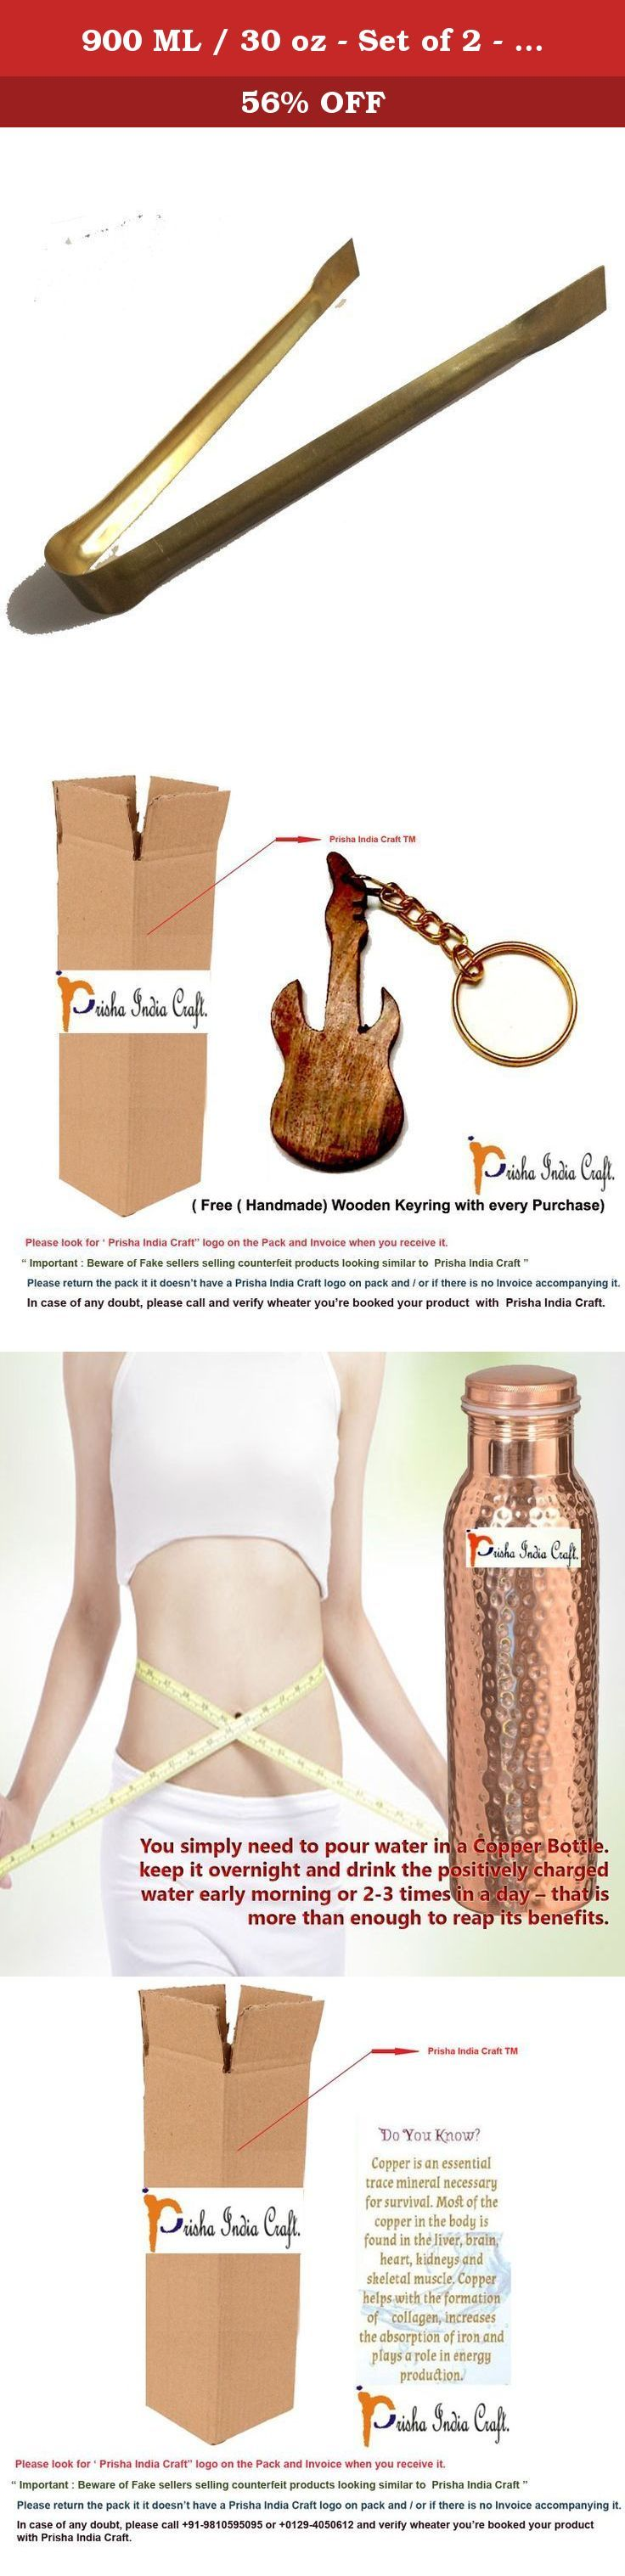 900 ML / 30 oz - Set of 2 - Prisha India Craft ® Traveller's 100 % Pure Copper Water Bottle or Thermos Flask Ayurveda Health Benefits - Designer Water Bottles Joint Free,Leak Proof Christmas Gift. Prisha India Craft Copper Water Bottle is designed to bring the ancient remedy of copper water pitchers to modern homes, so that you can keep water in a traditional Ayurveda healing vessel. By simply filling the carafe with water and letting it sit for 6 to 12 hours, you'll be able to benefit…